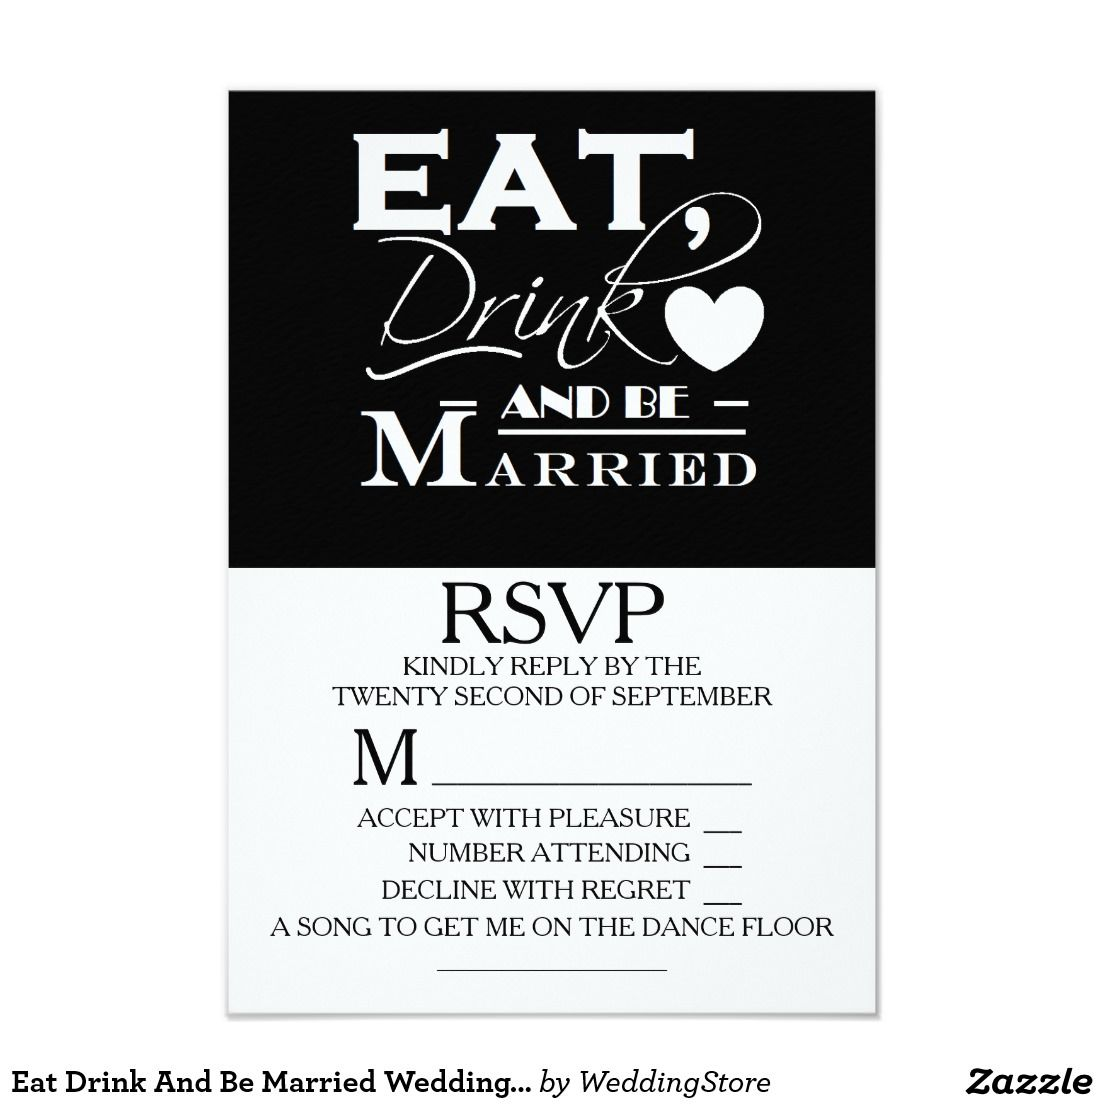 eat drink and be married wedding rsvp card | wedding, drinks and cards, Wedding invitations